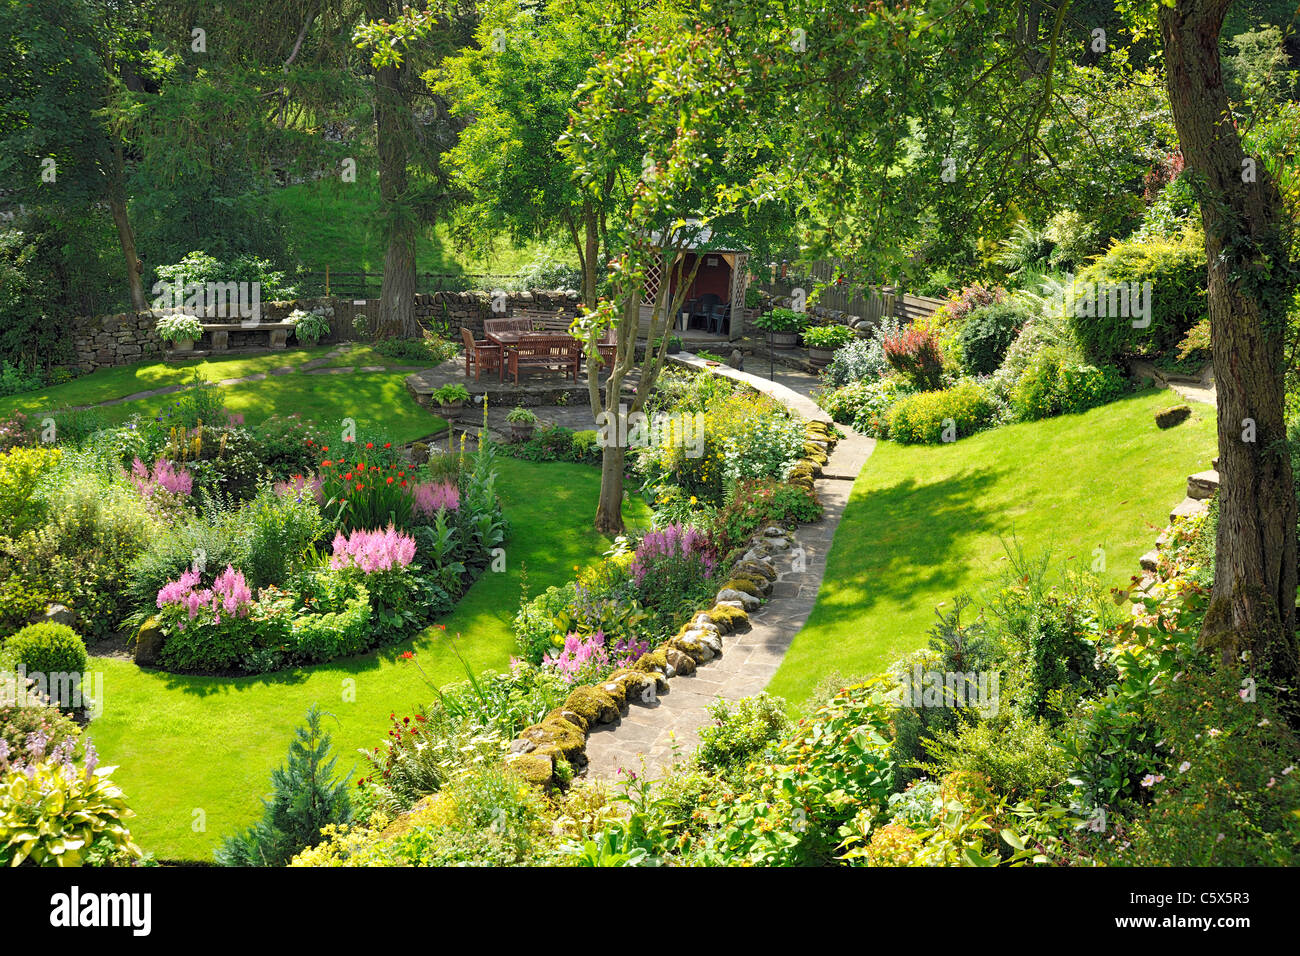 An eye-catching, peaceful and secluded cottage garden in Grinton, Swaledale, North Yorkshire, England - Stock Image